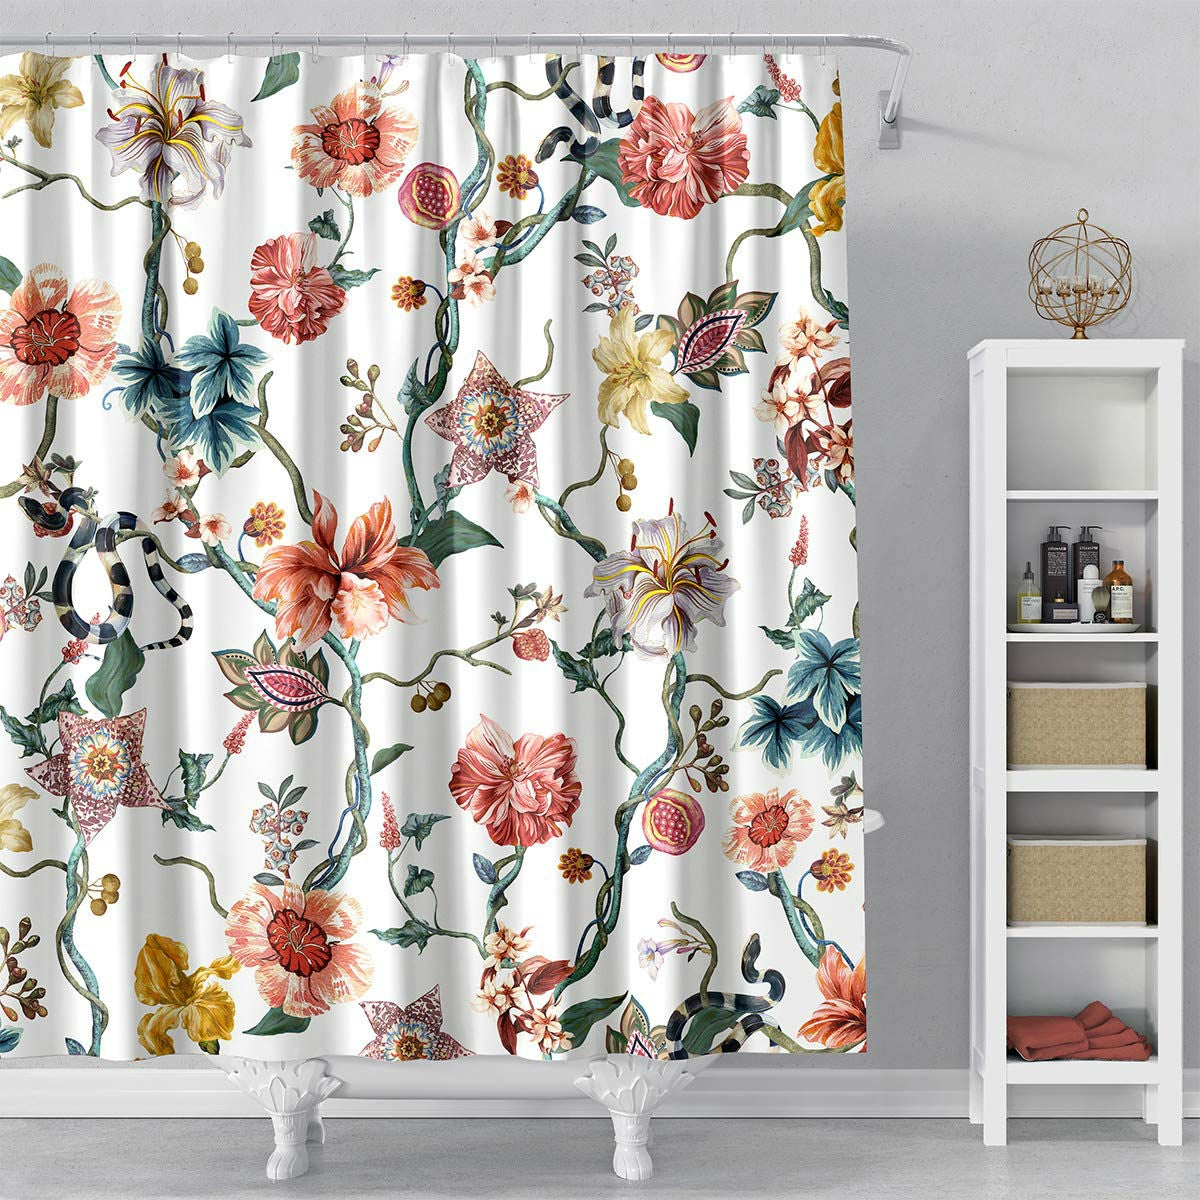 The Best Shower Curtains: MACOFE